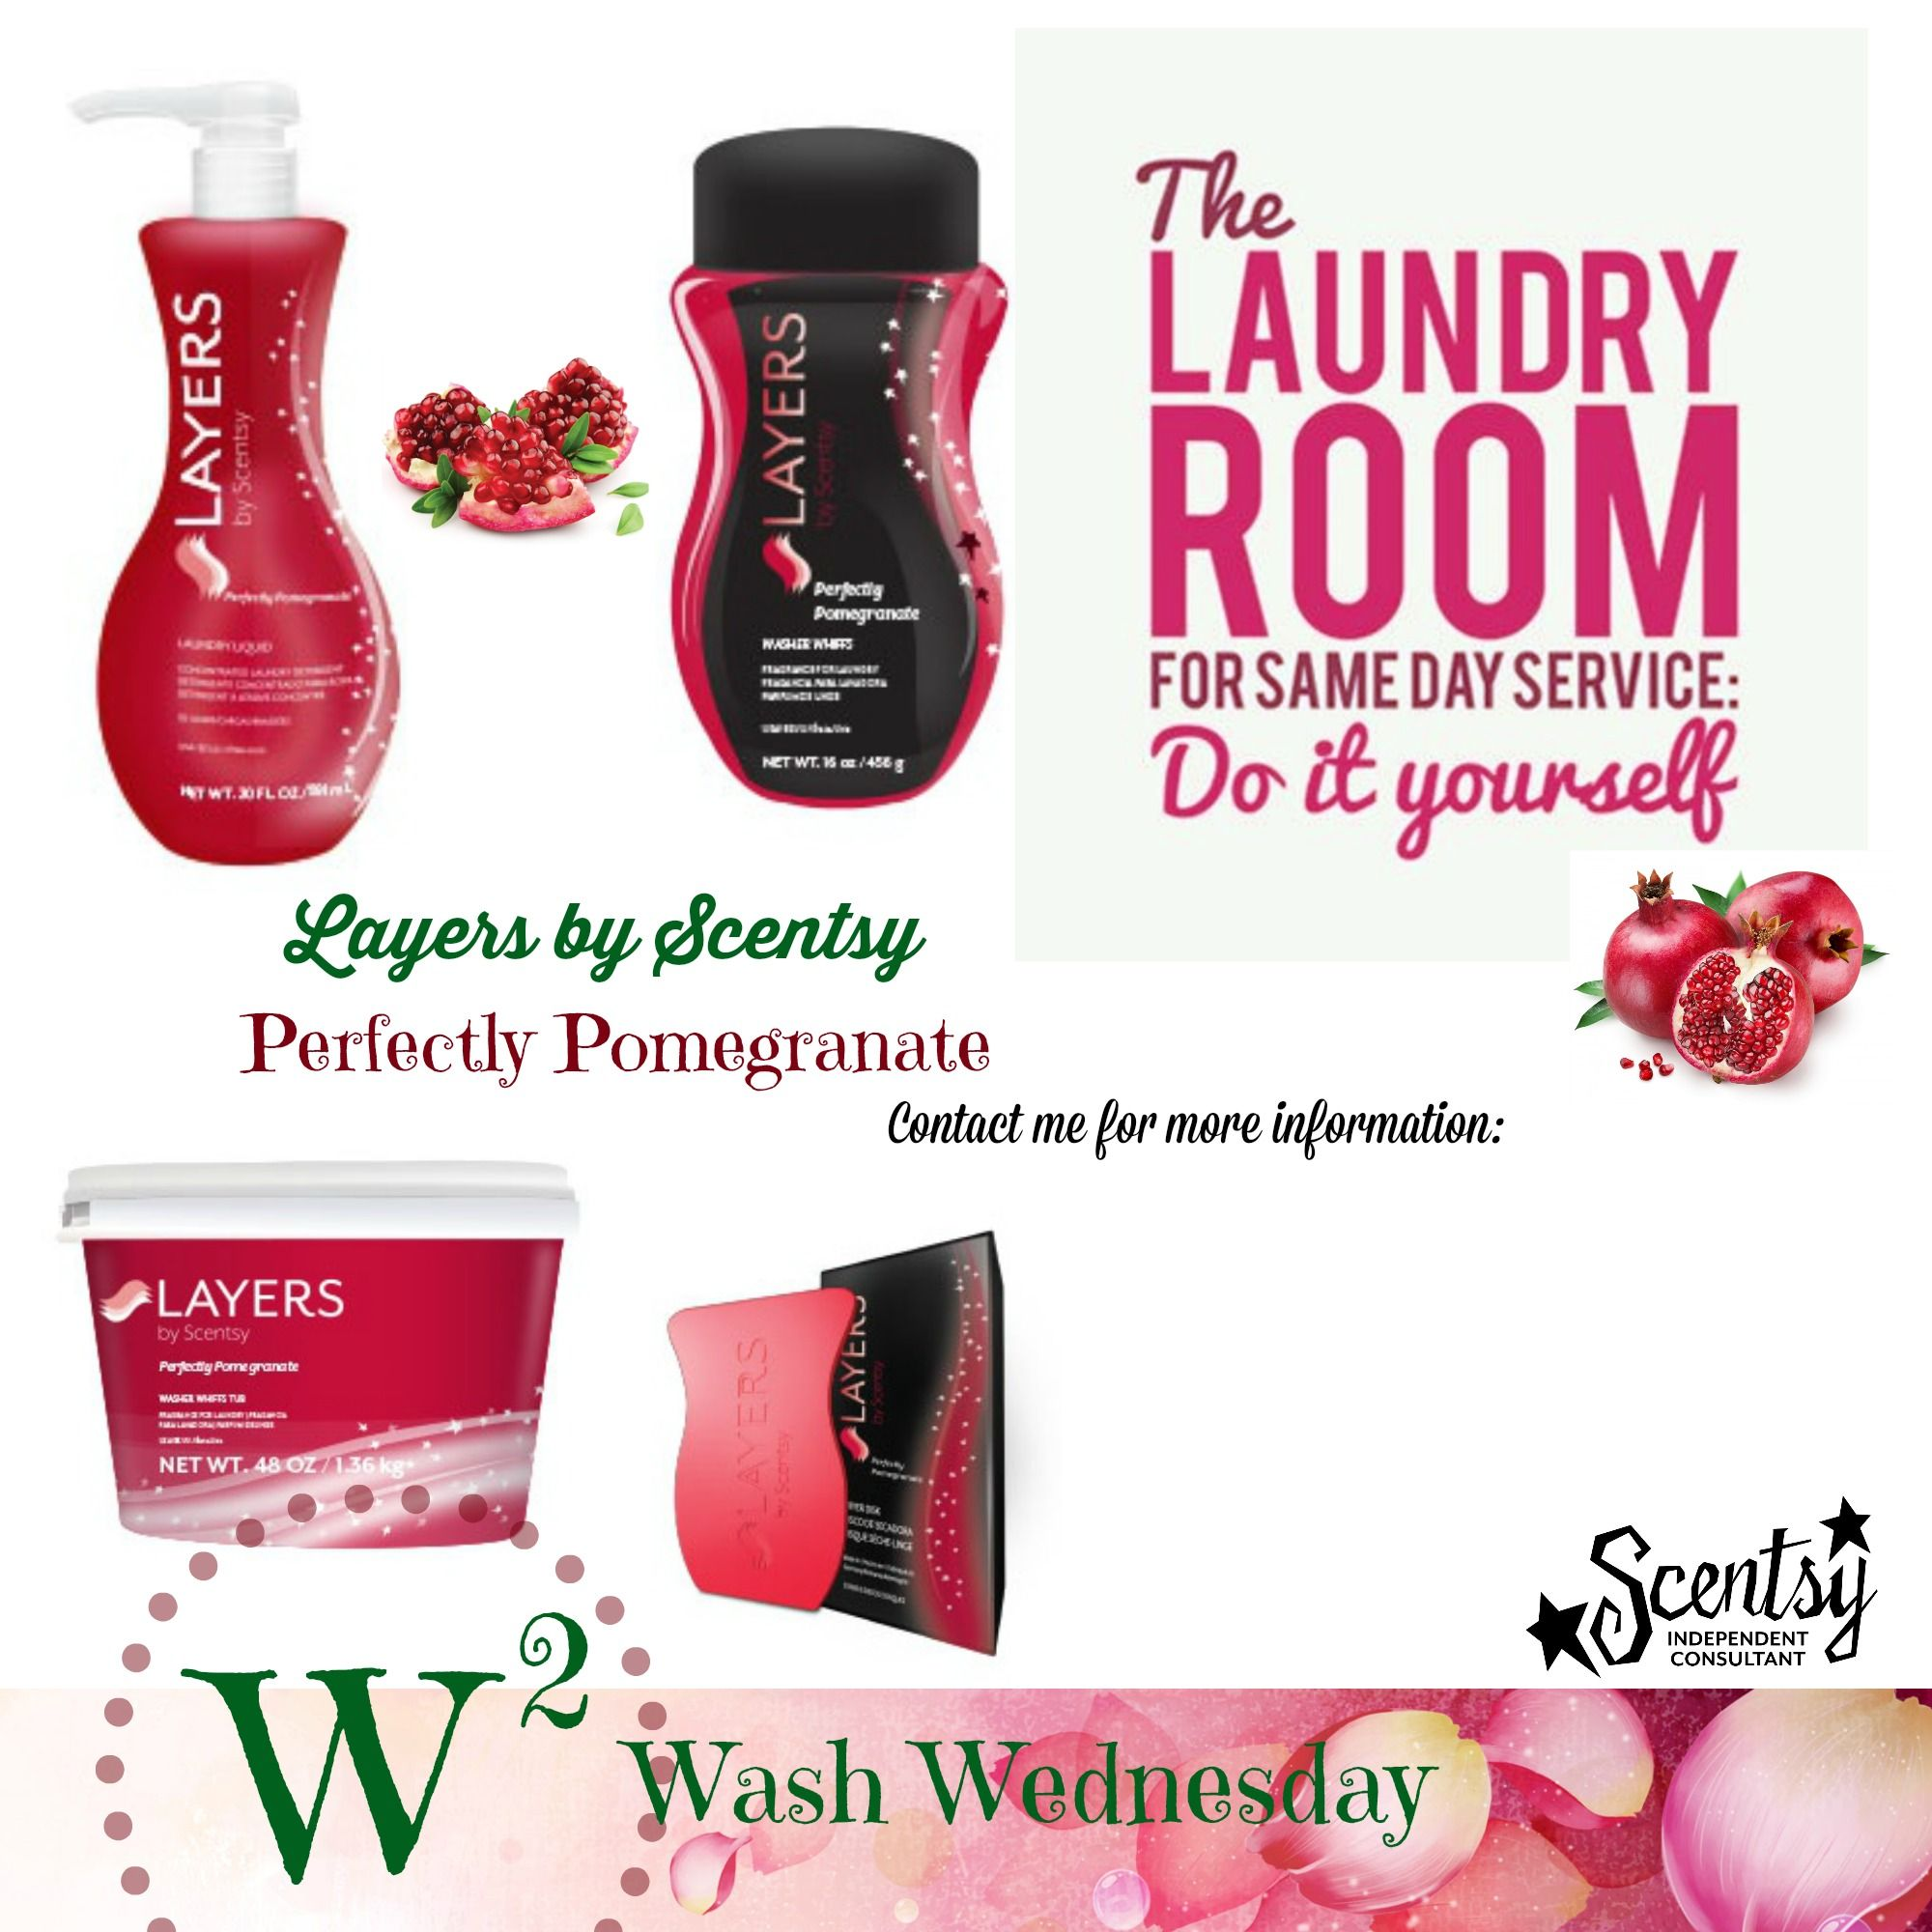 Scentsy laundry care perfectly pomegranate for washwednesday scentsy laundry care perfectly pomegranate for washwednesday laundry cleaning tips solutioingenieria Image collections